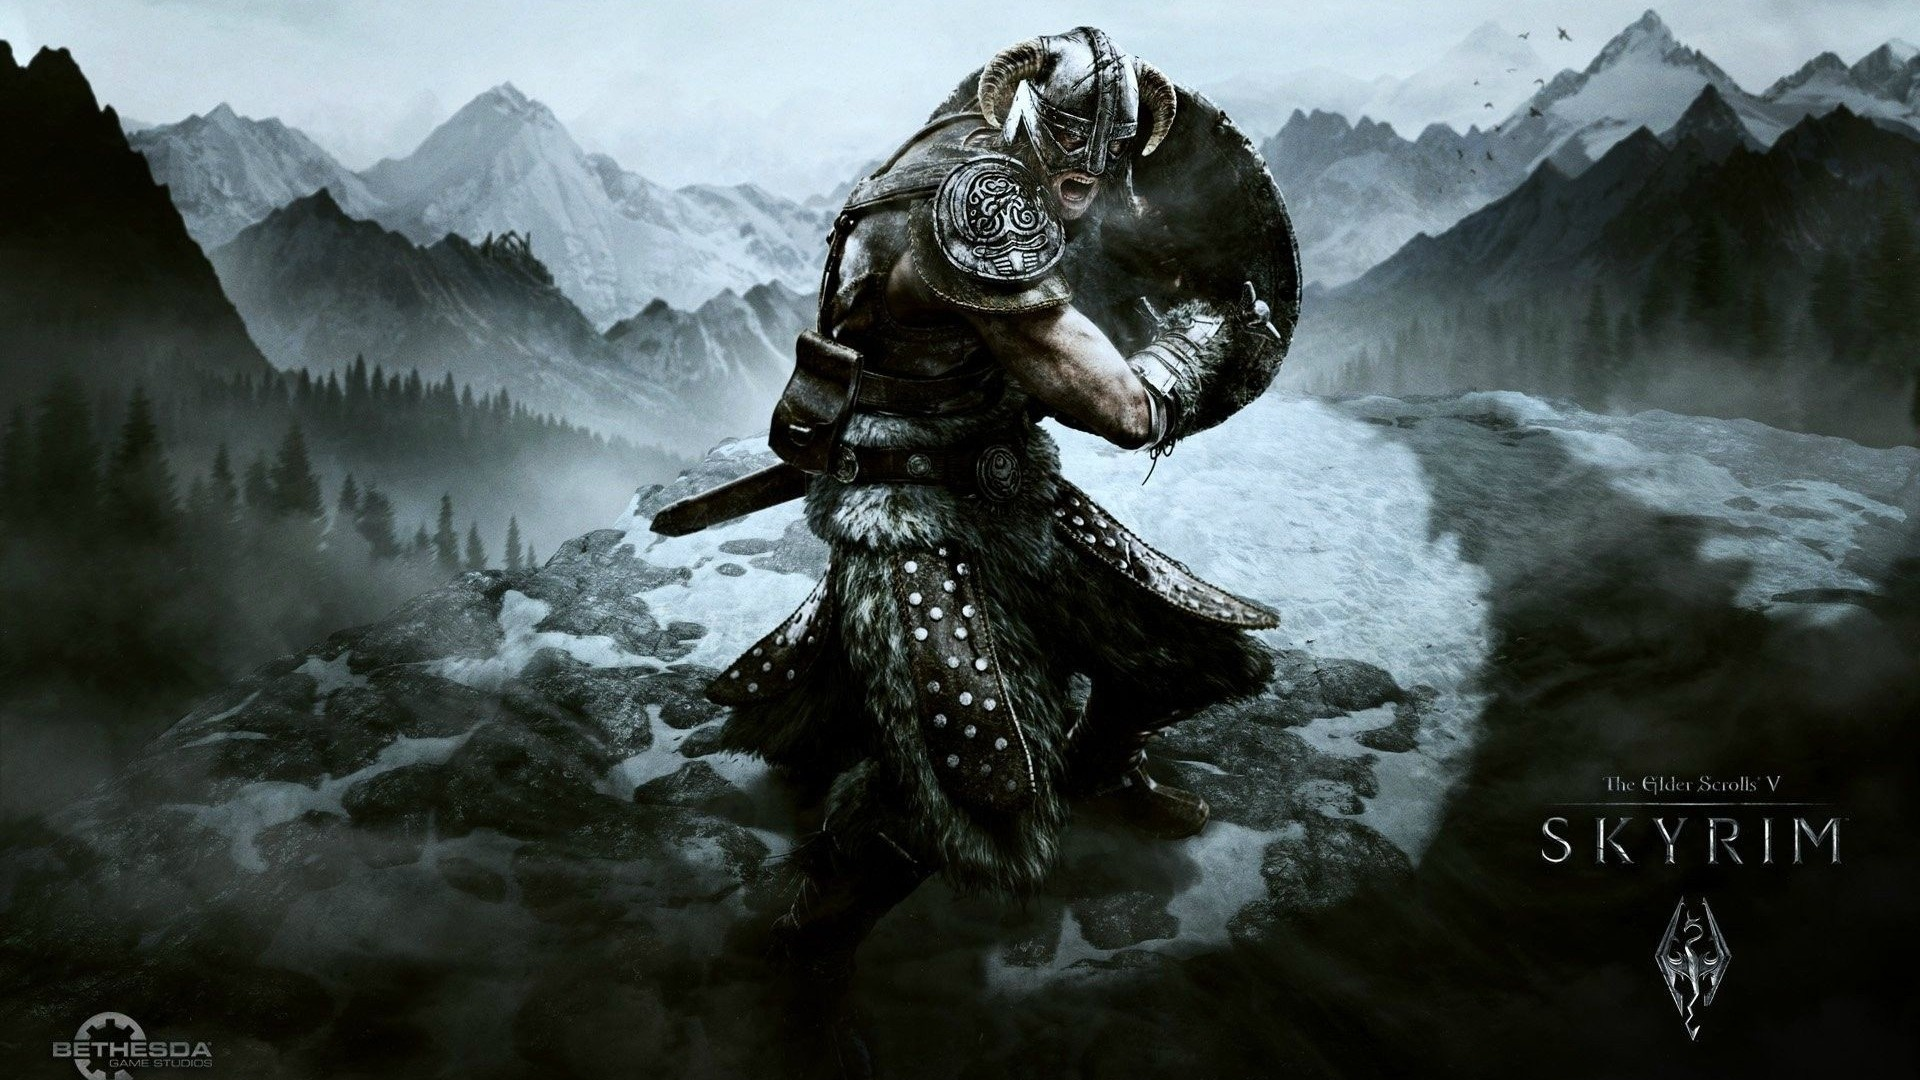 The Elder Scrolls V: Skyrim game HD wallpaper - 1920x1080